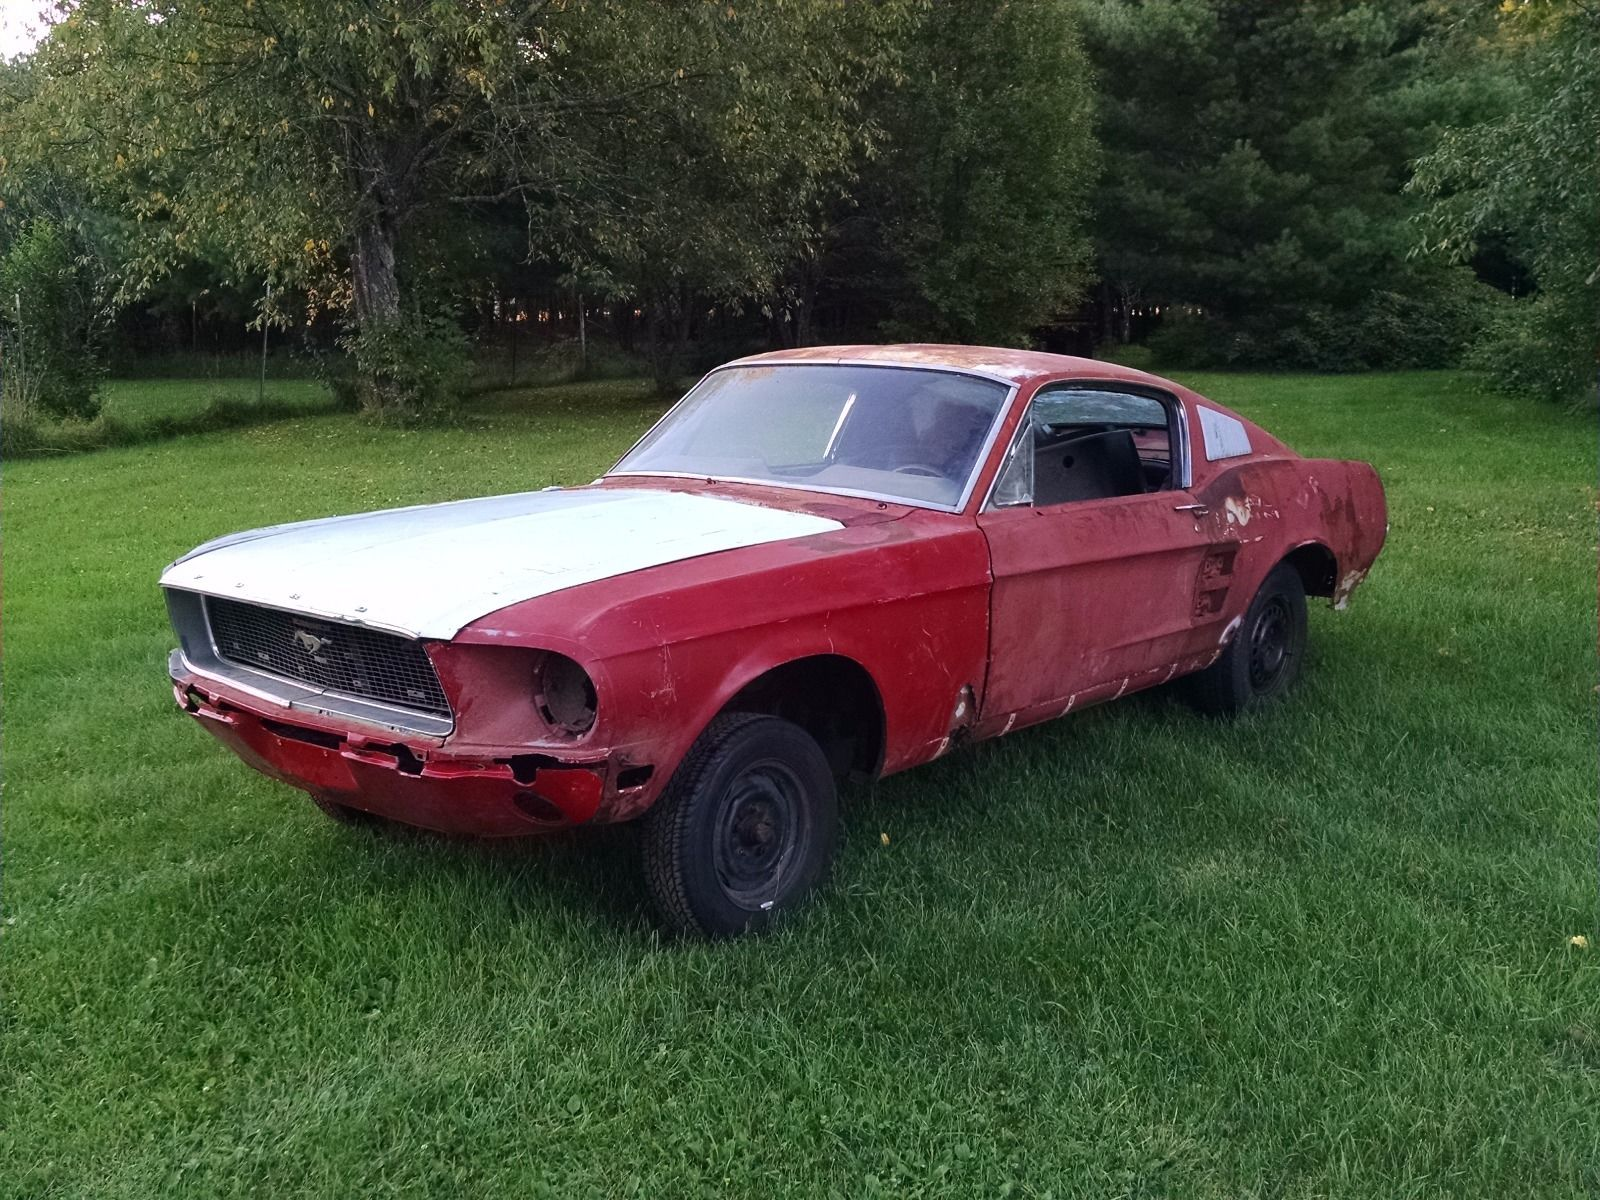 1967 Ford Mustang Fastback Project